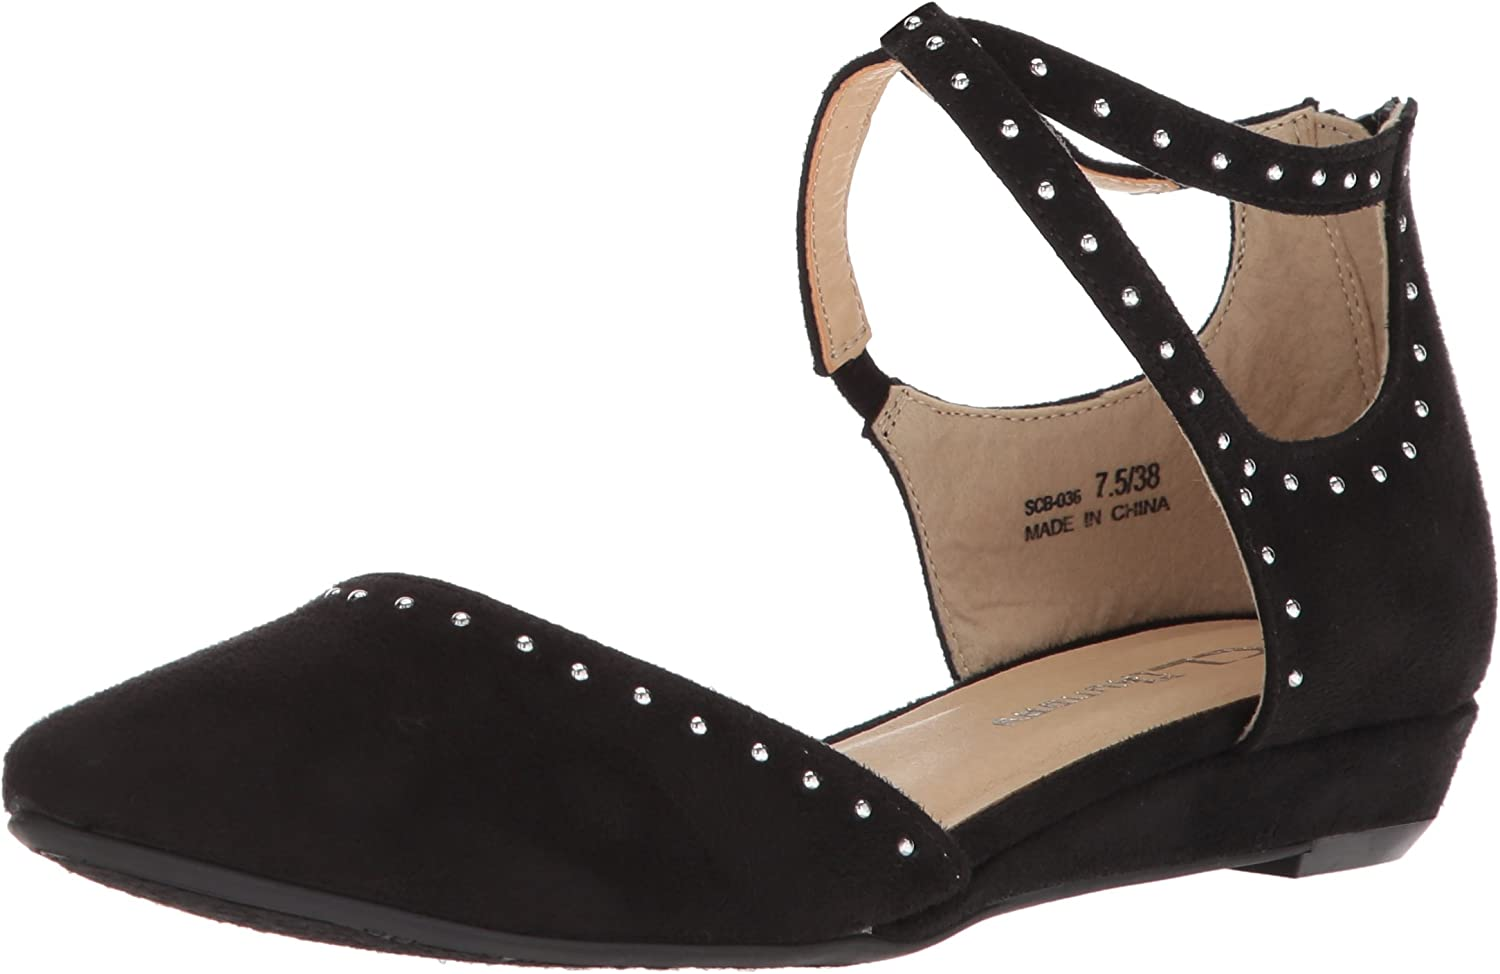 CL by Chinese Laundry Women's Smile Ballet Flat